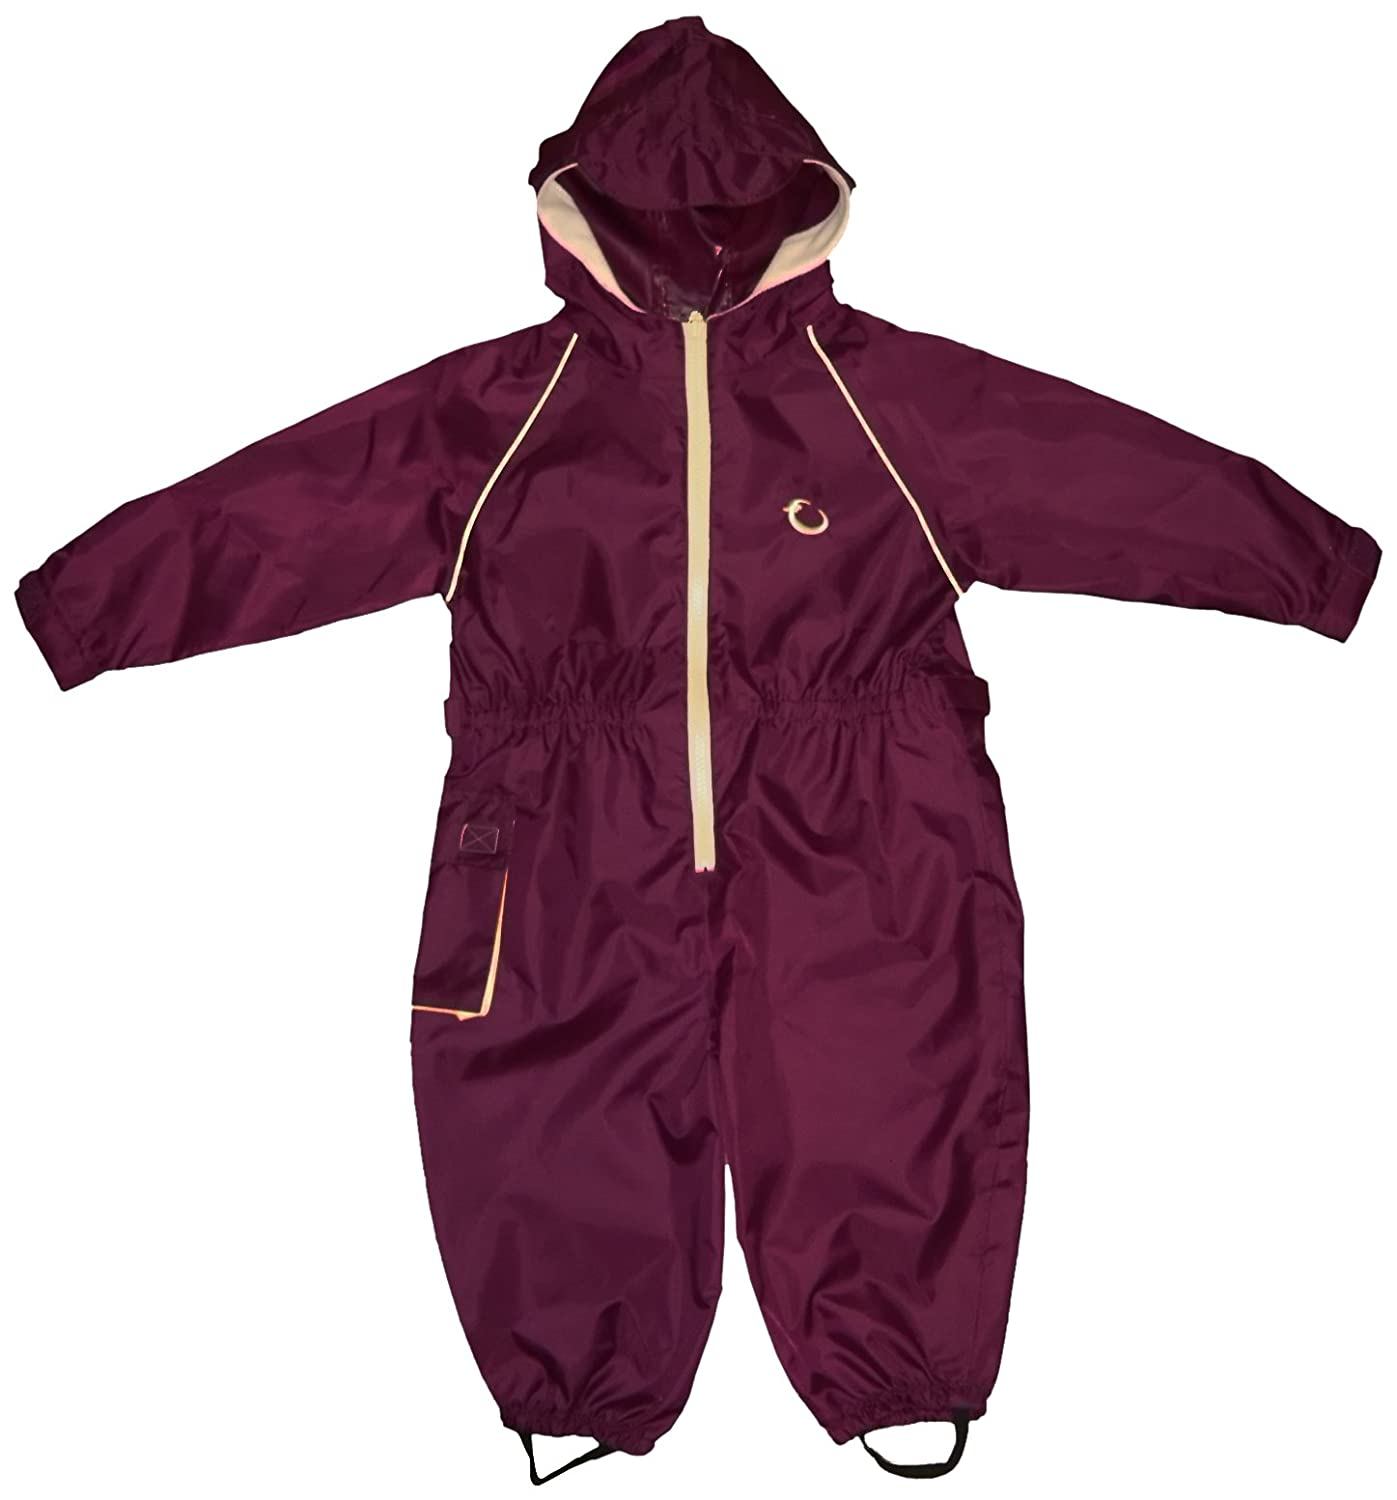 Hippychick Waterproof All-in-One Suit - Burgundy/Sand, 12-18 Months HWNBS12-18